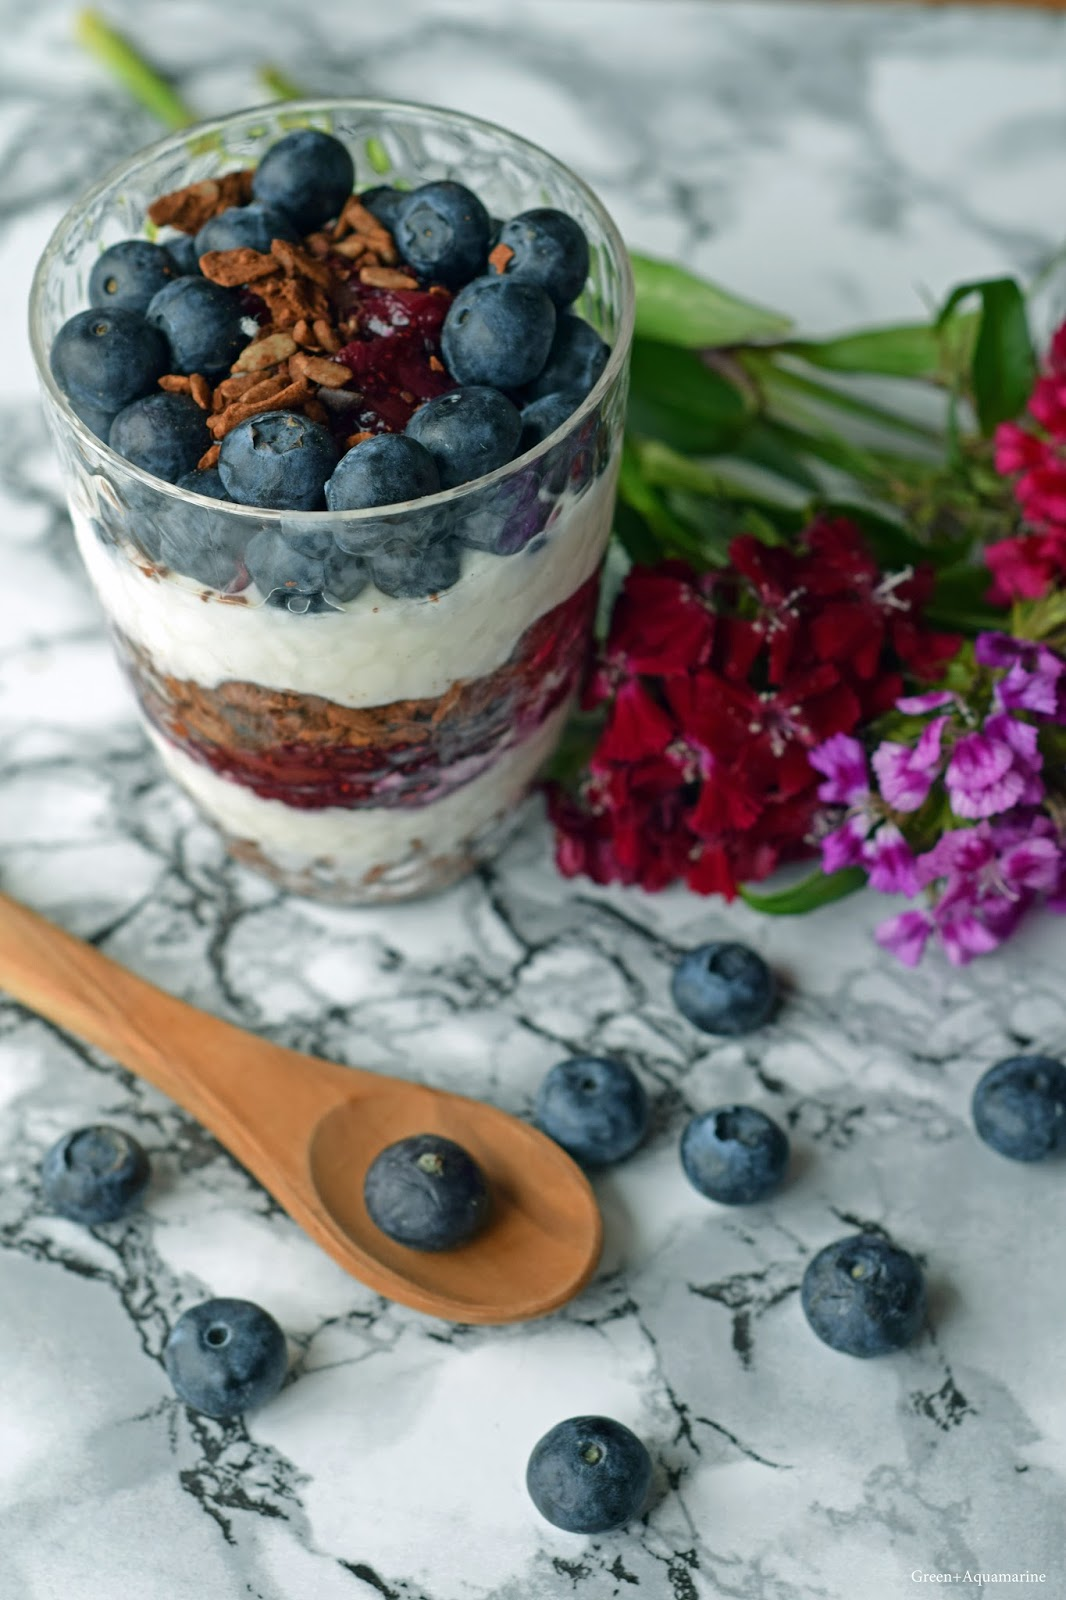 Black Forest inspired parfait, using Planet Organic's paleo granola. Via @eleanormayc